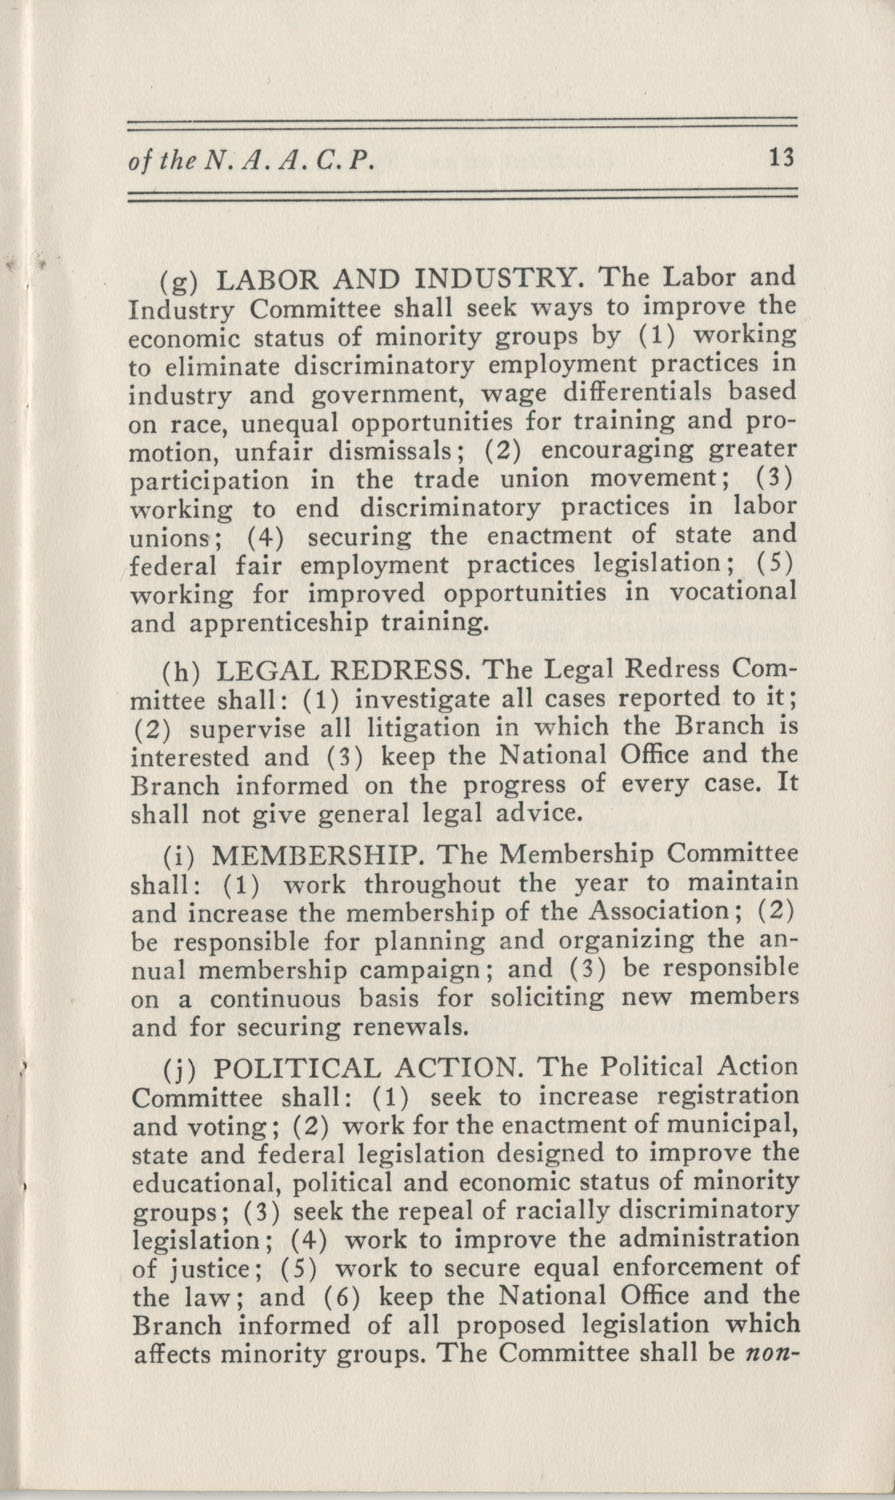 Constitutions and By-Laws, September 1960, Page 13